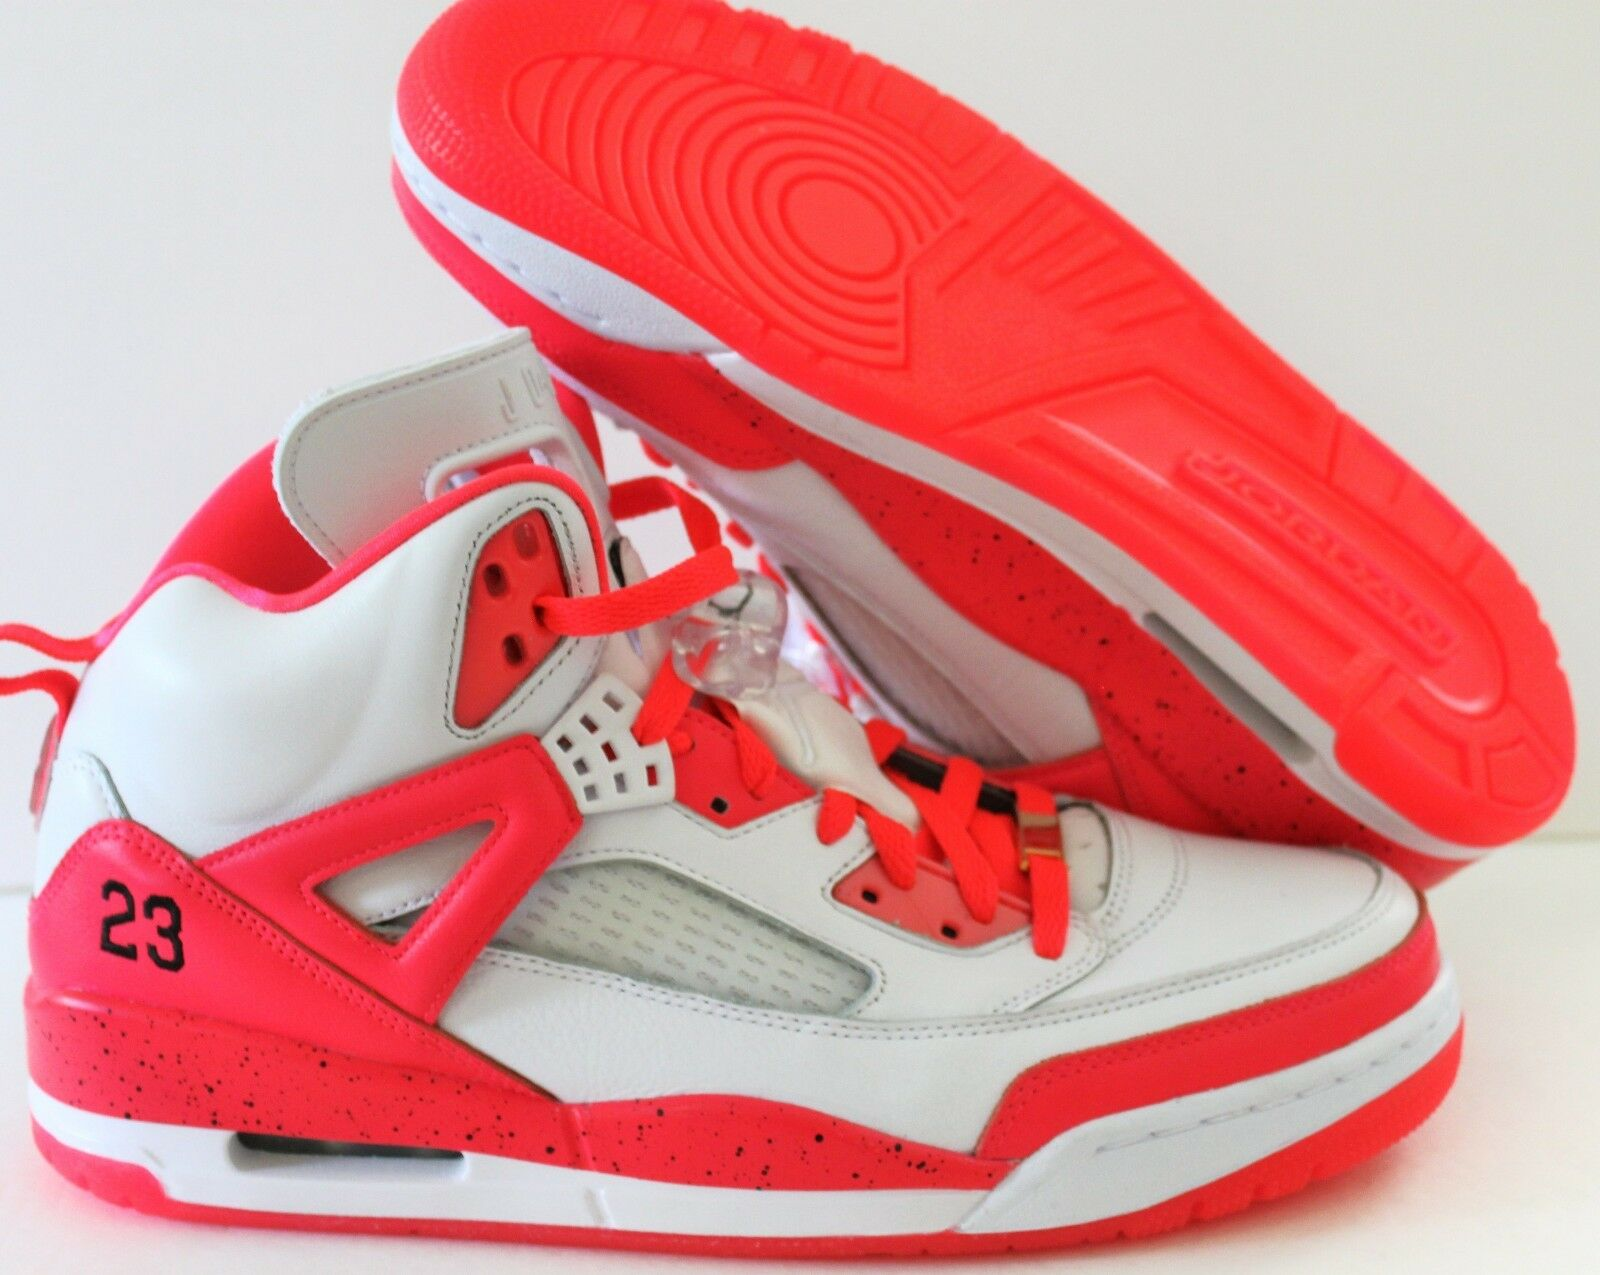 NIKE AIR JORDAN SPIZIKE iD WHITE-BLACK-PINK 12 SZ 12 WHITE-BLACK-PINK  [605236-971] 26a2a2